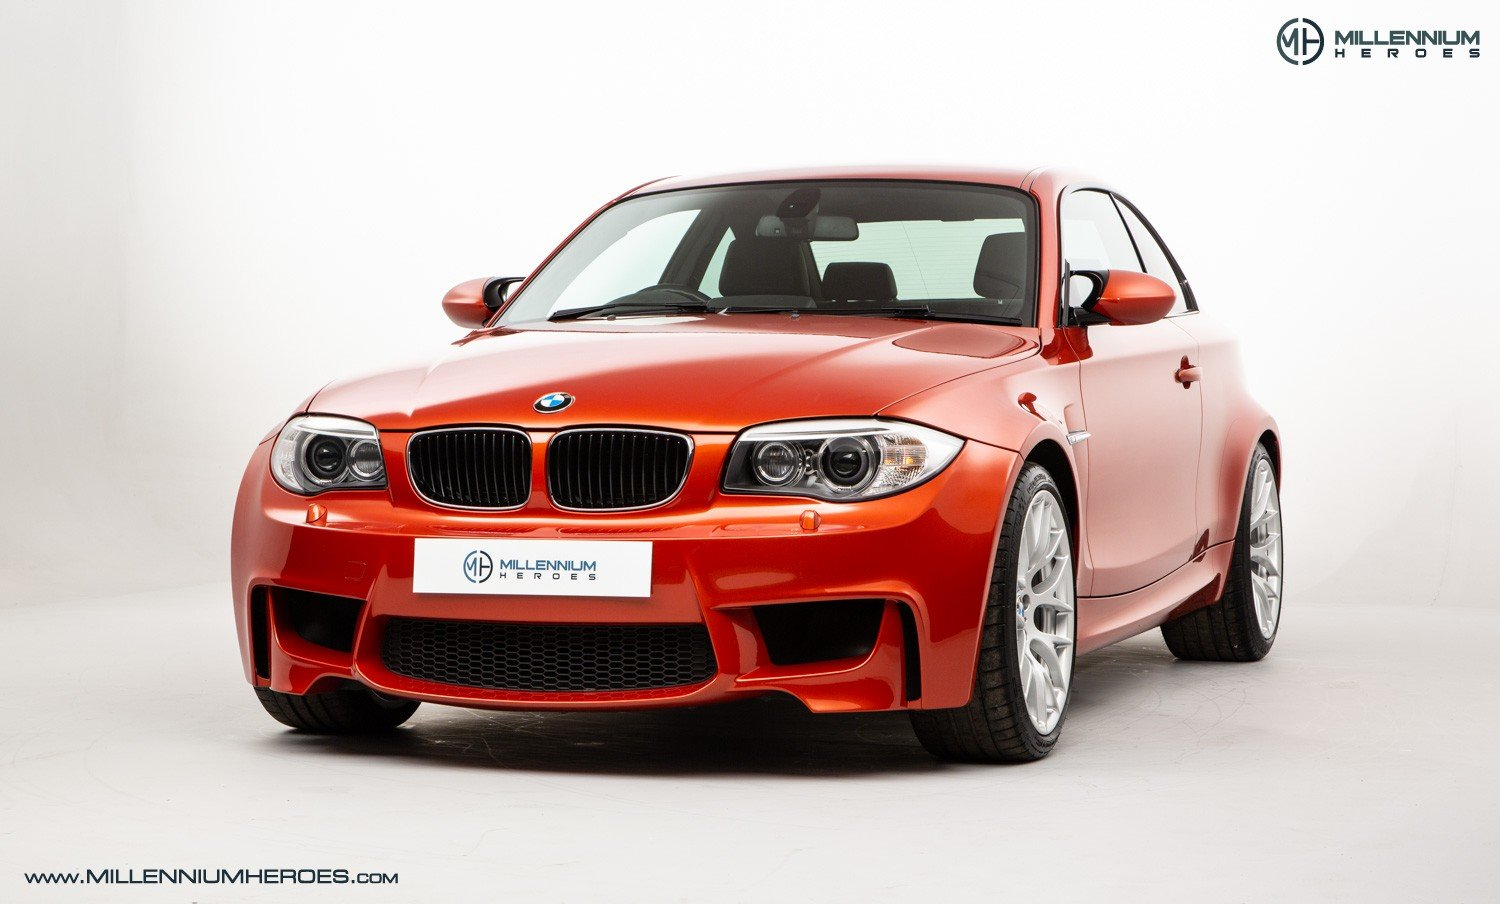 2011 BMW 1M COUPE  For Sale (picture 1 of 6)